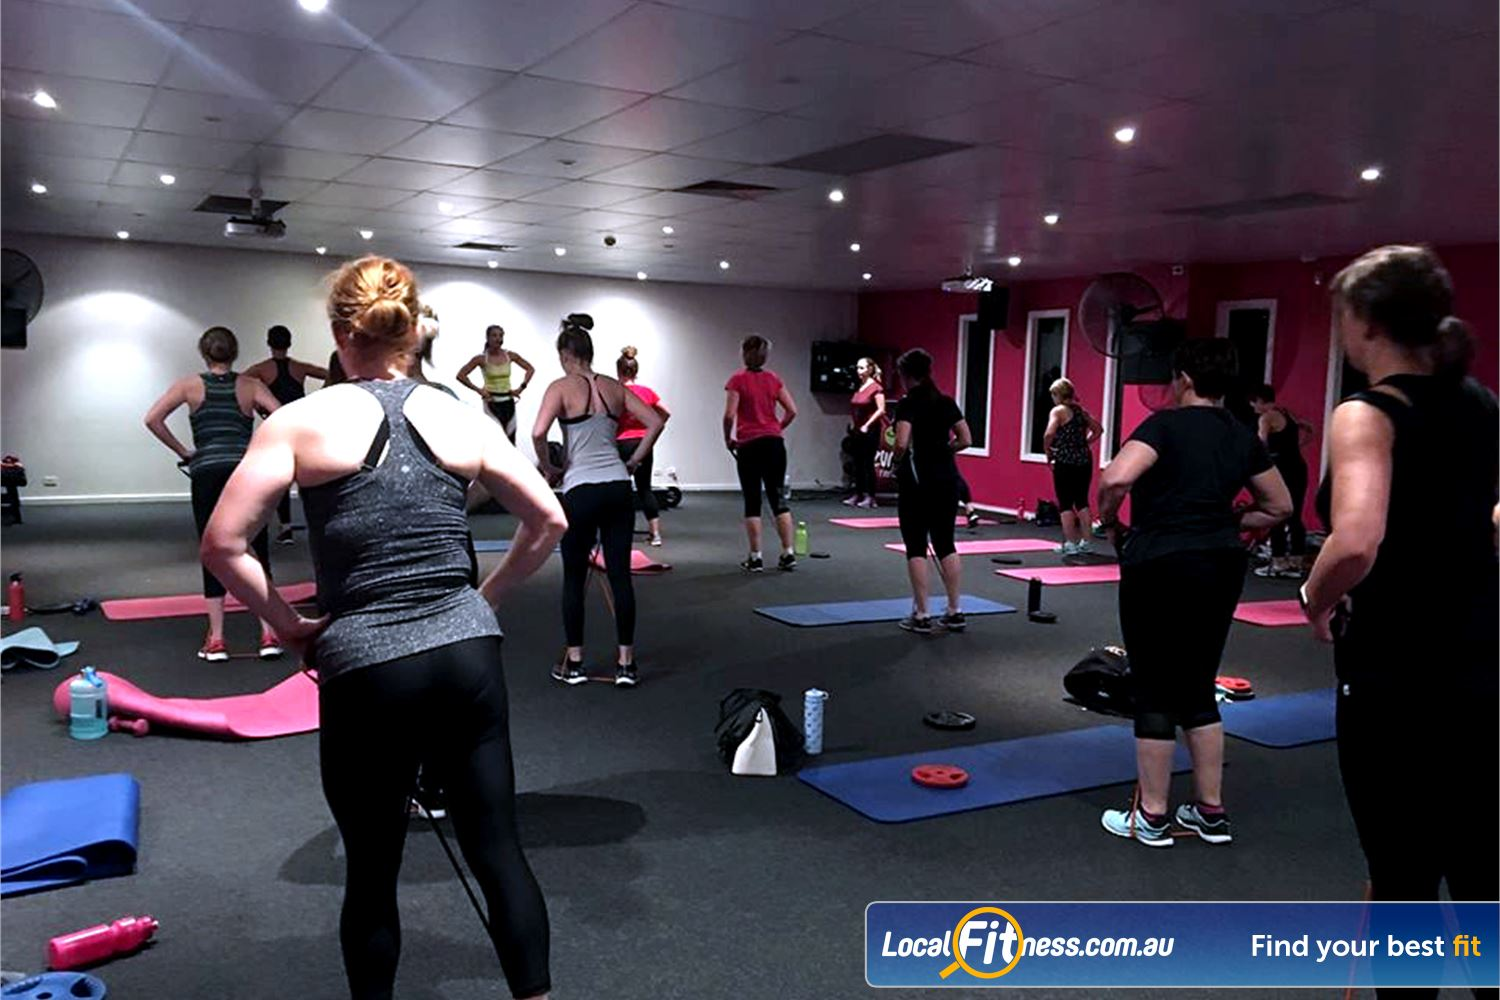 Fernwood Fitness Near Wynn Vale Over 50 classes inc. St Agnes Yoga, Zumba, Les Mills and more.